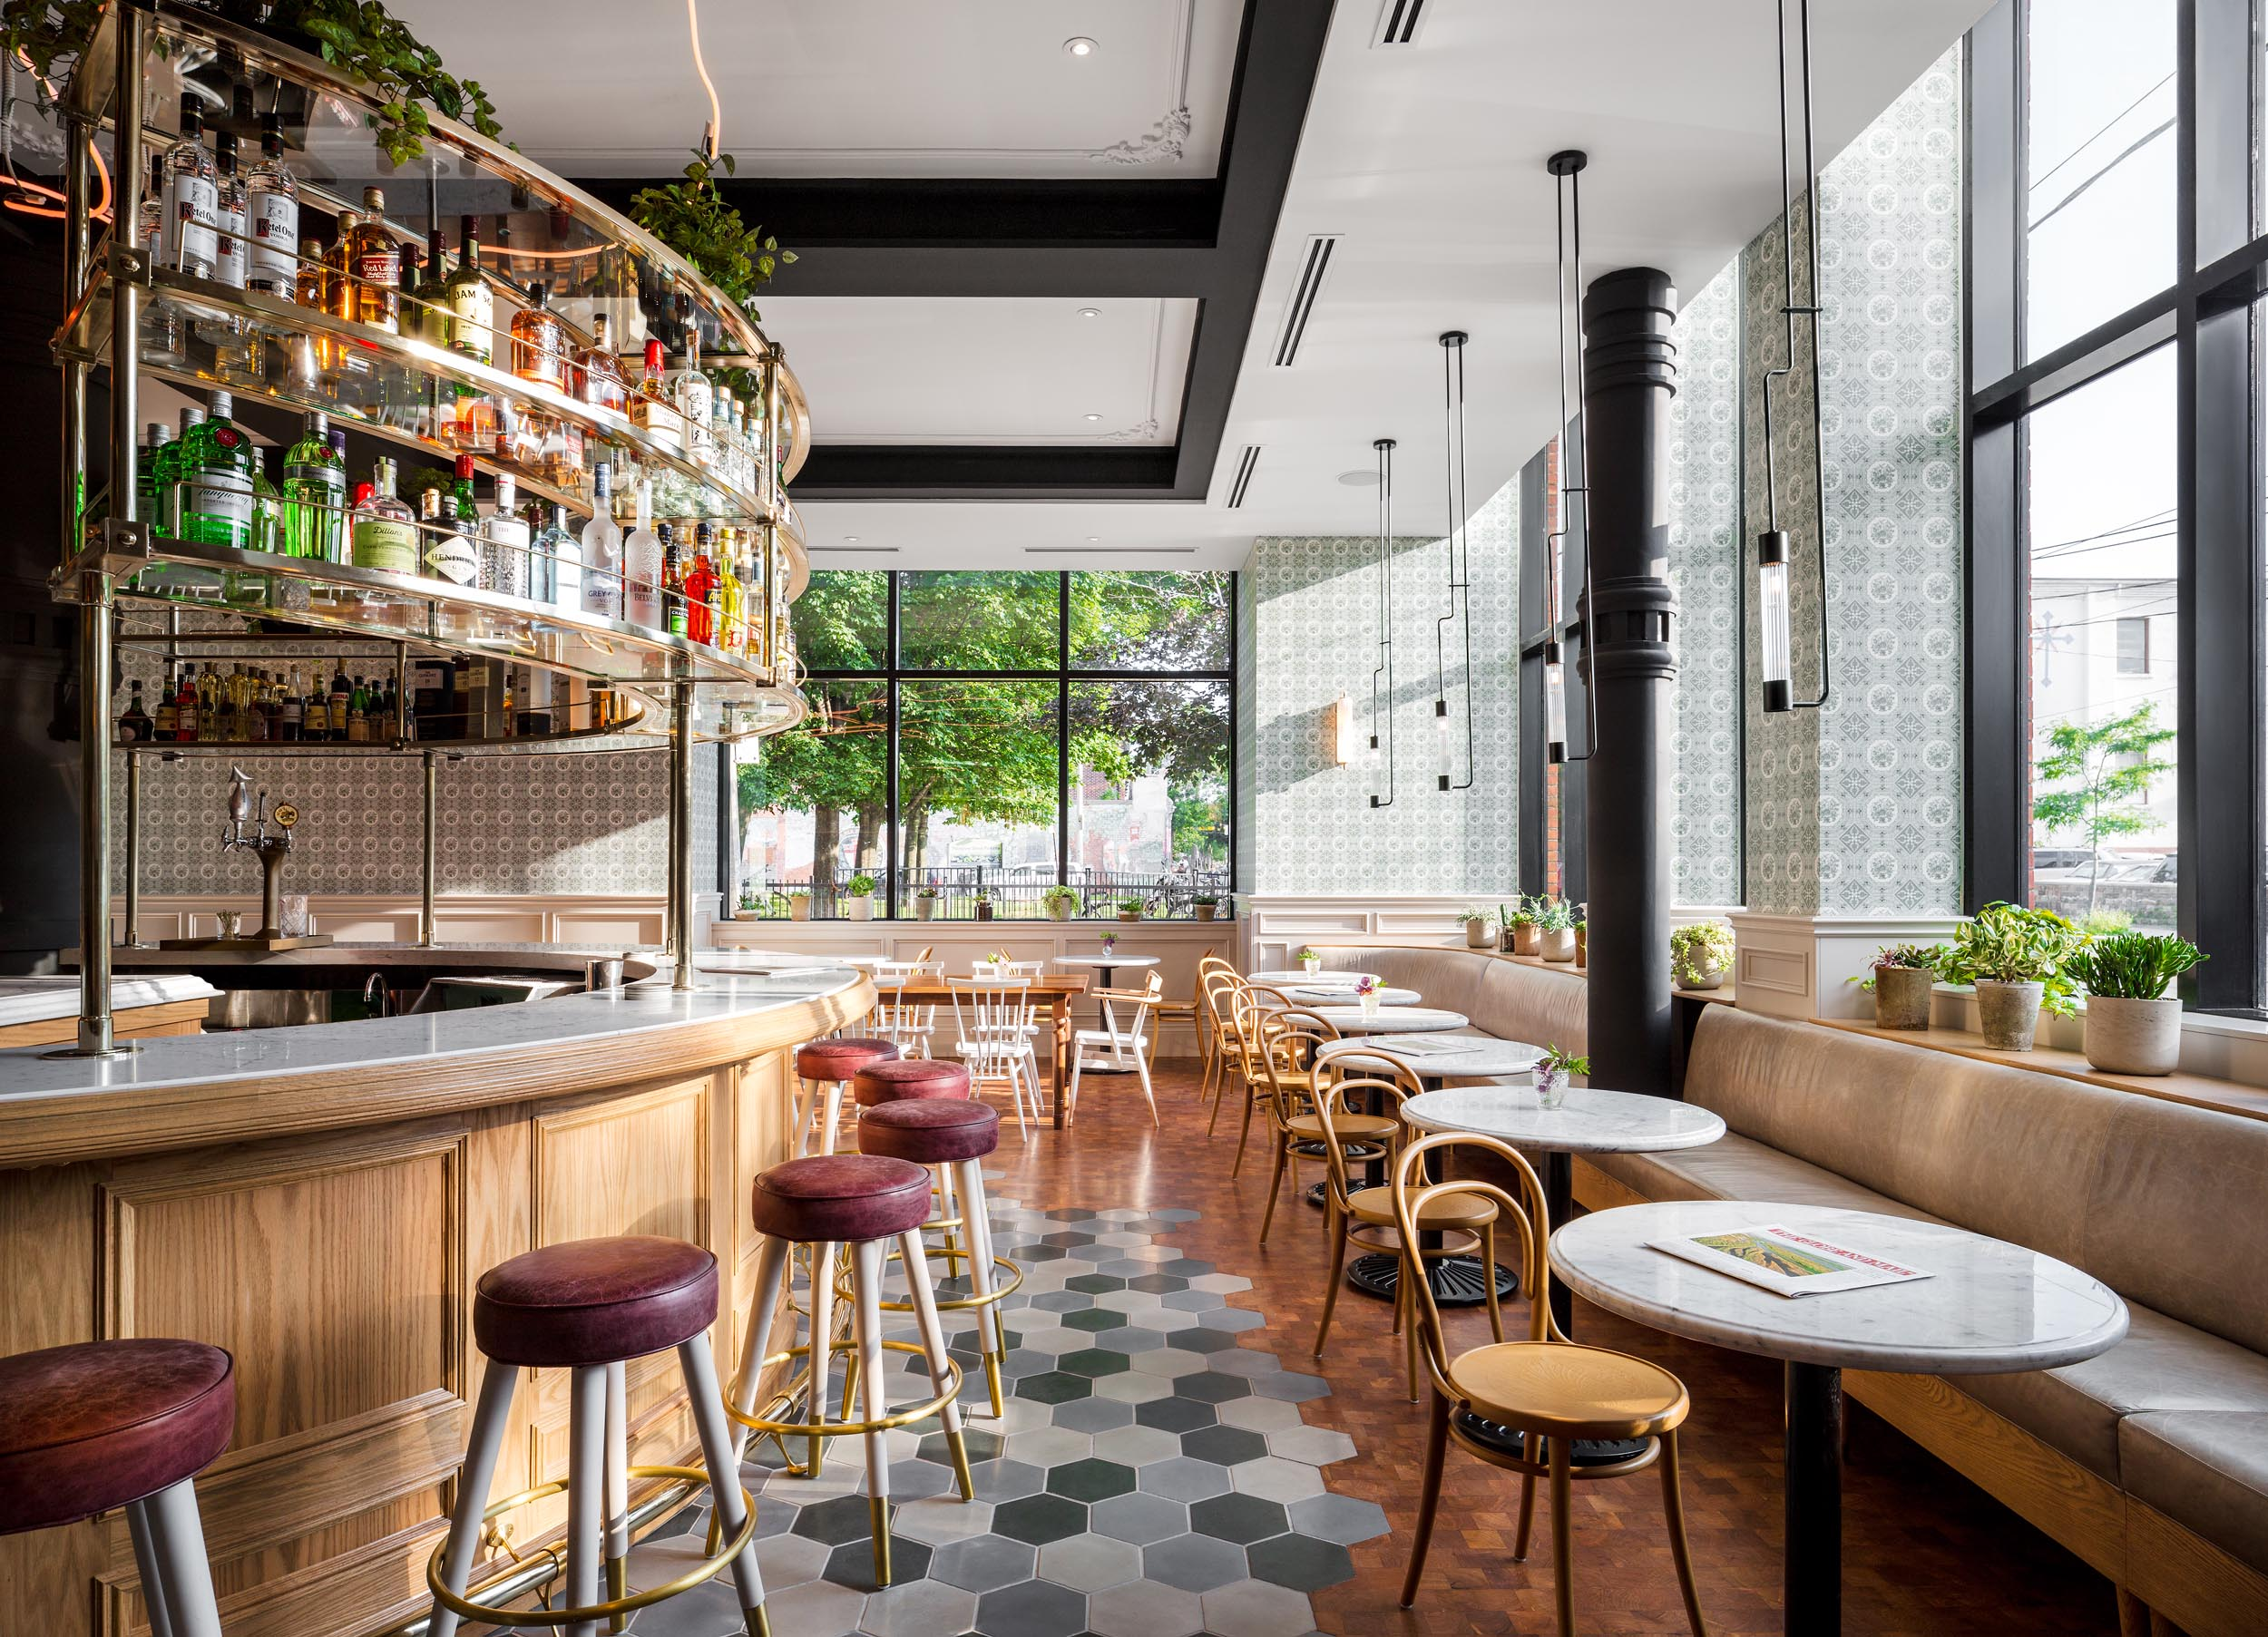 Restaurant Interior Photography of Broadview Hotel by Worker Bee Supply